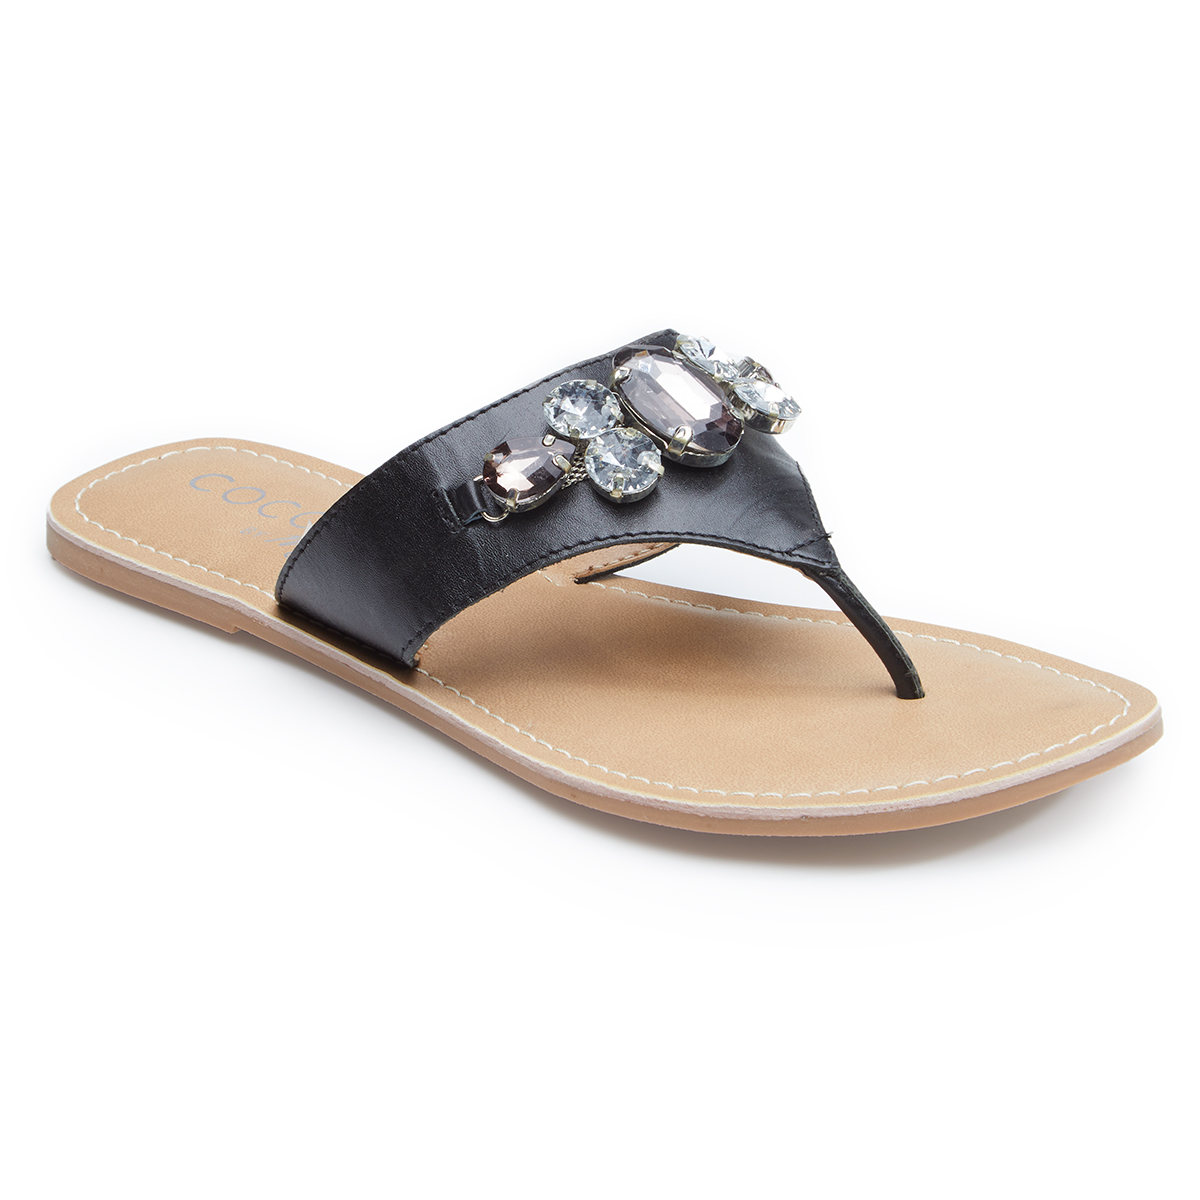 Matisse Footwear Women's Coconuts Bambam Thong Sandals - Black, 8